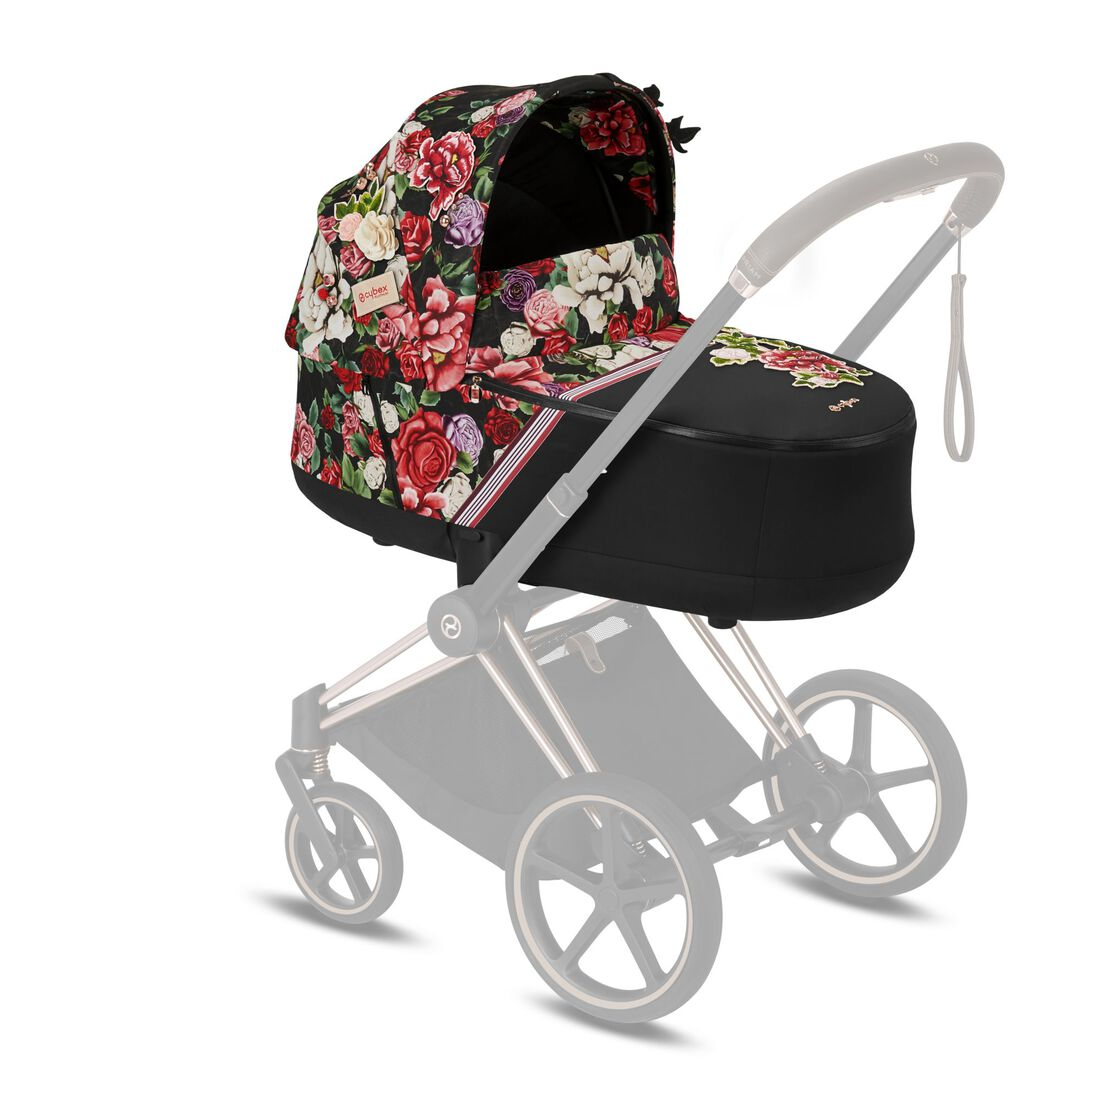 CYBEX Priam Lux Carry Cot - Spring Blossom Dark in Spring Blossom Dark large image number 4